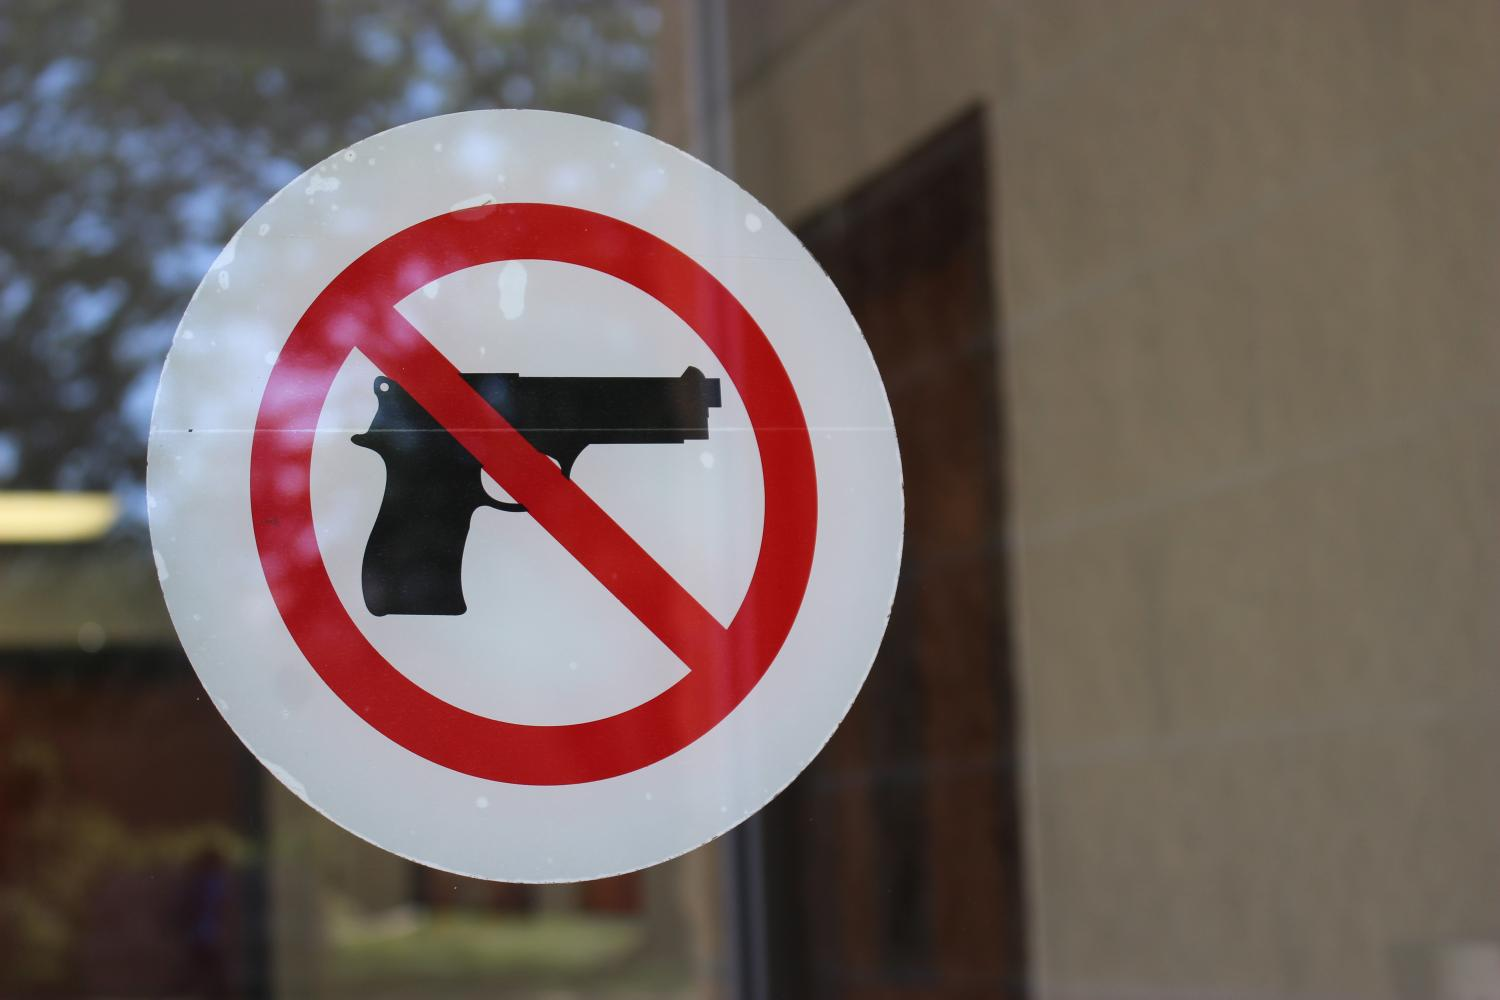 An+example+of+the+%22no+gun%22+signs+which+are+posed+on+several+campus+buildings.